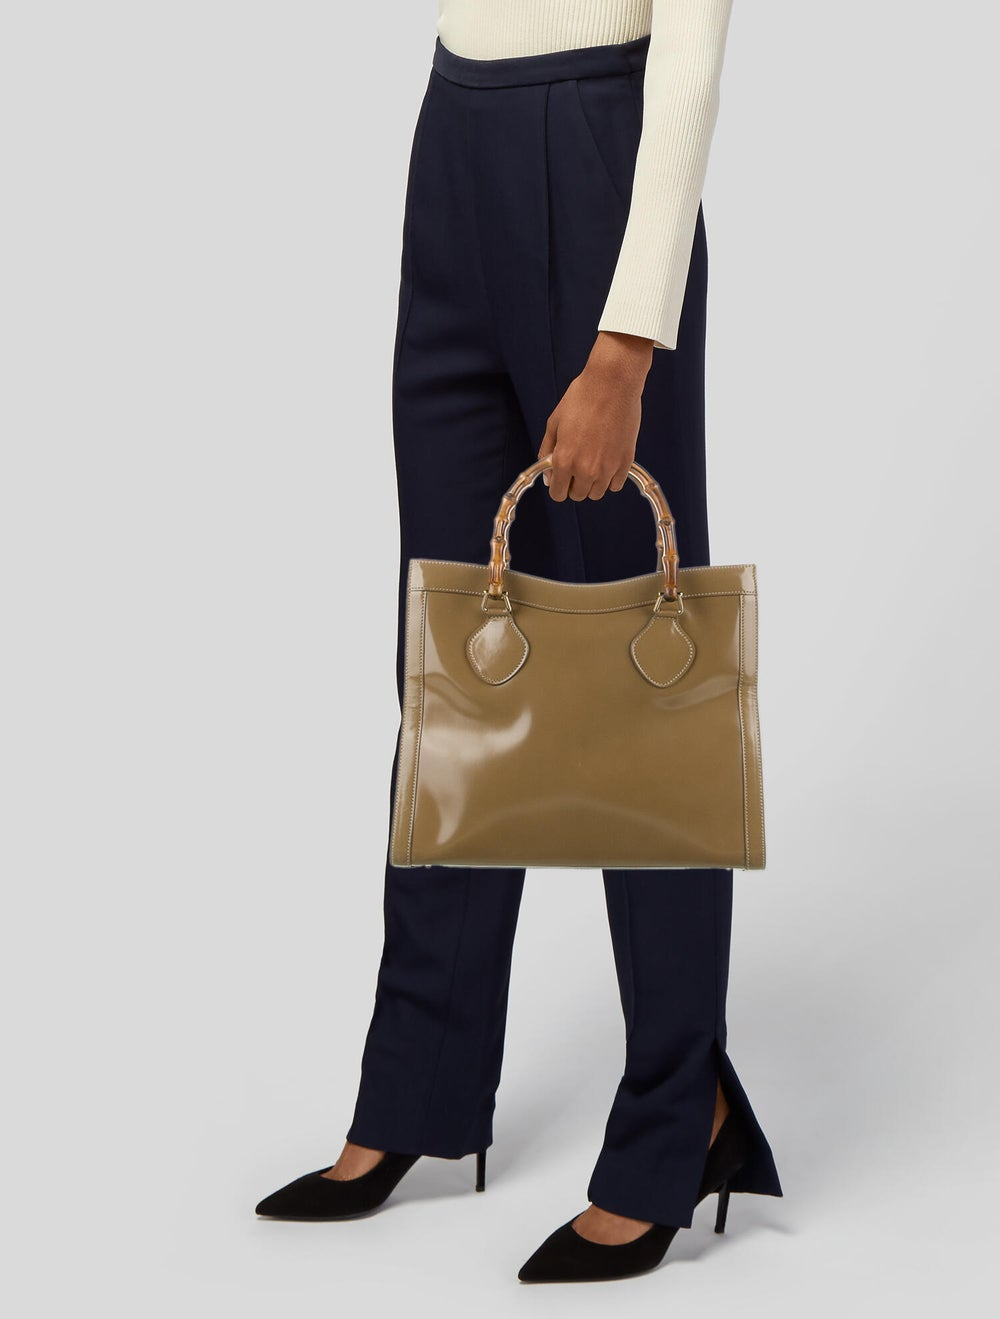 Gucci Vintage Leather Bamboo Diana Tote Brown - image 2